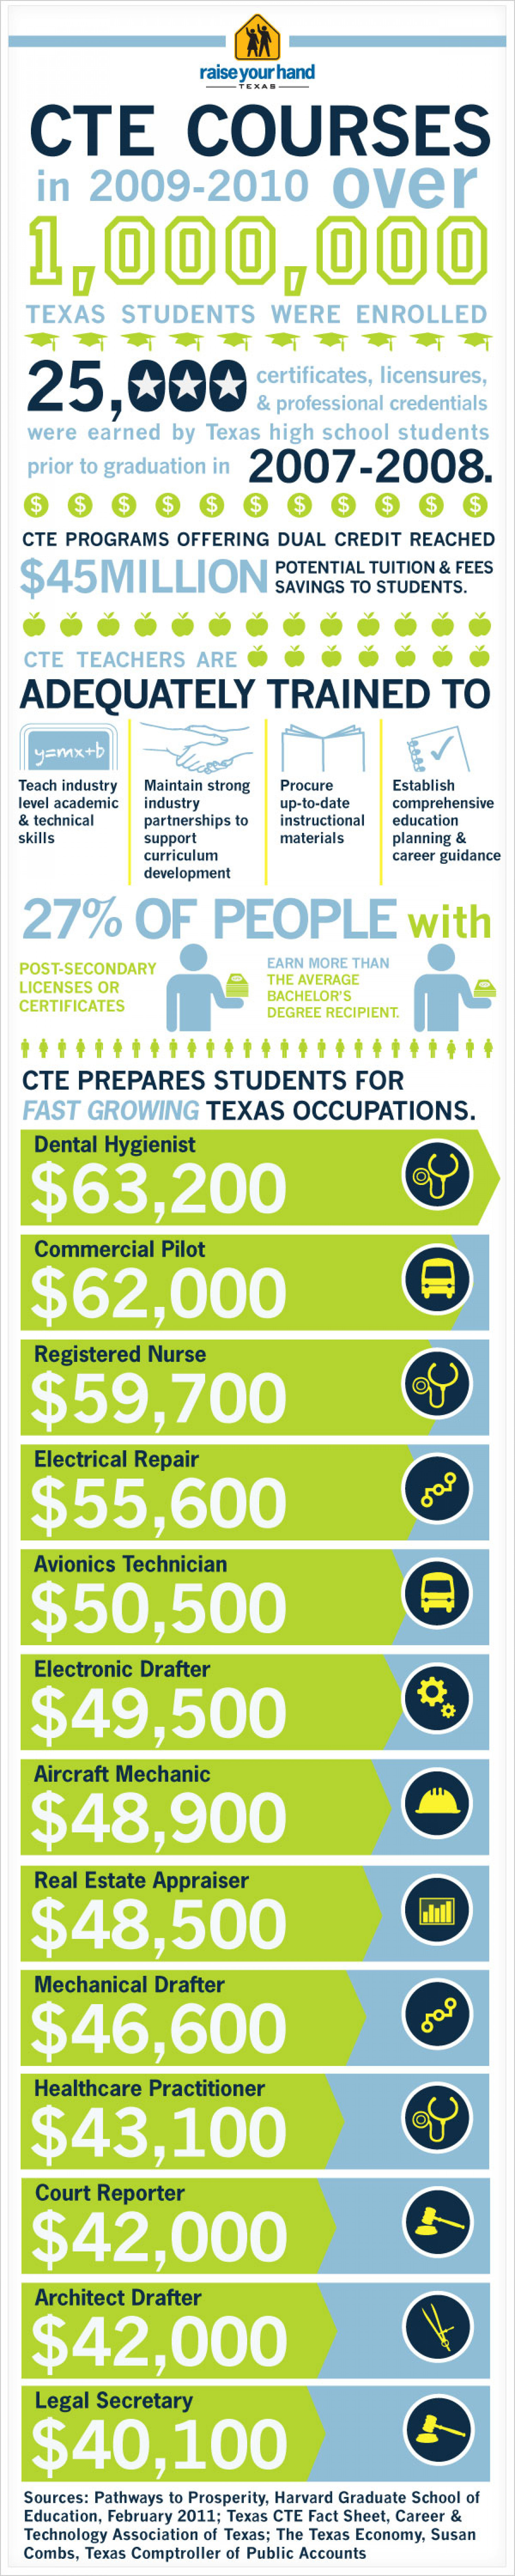 Texas Career and Technology Education Infographic